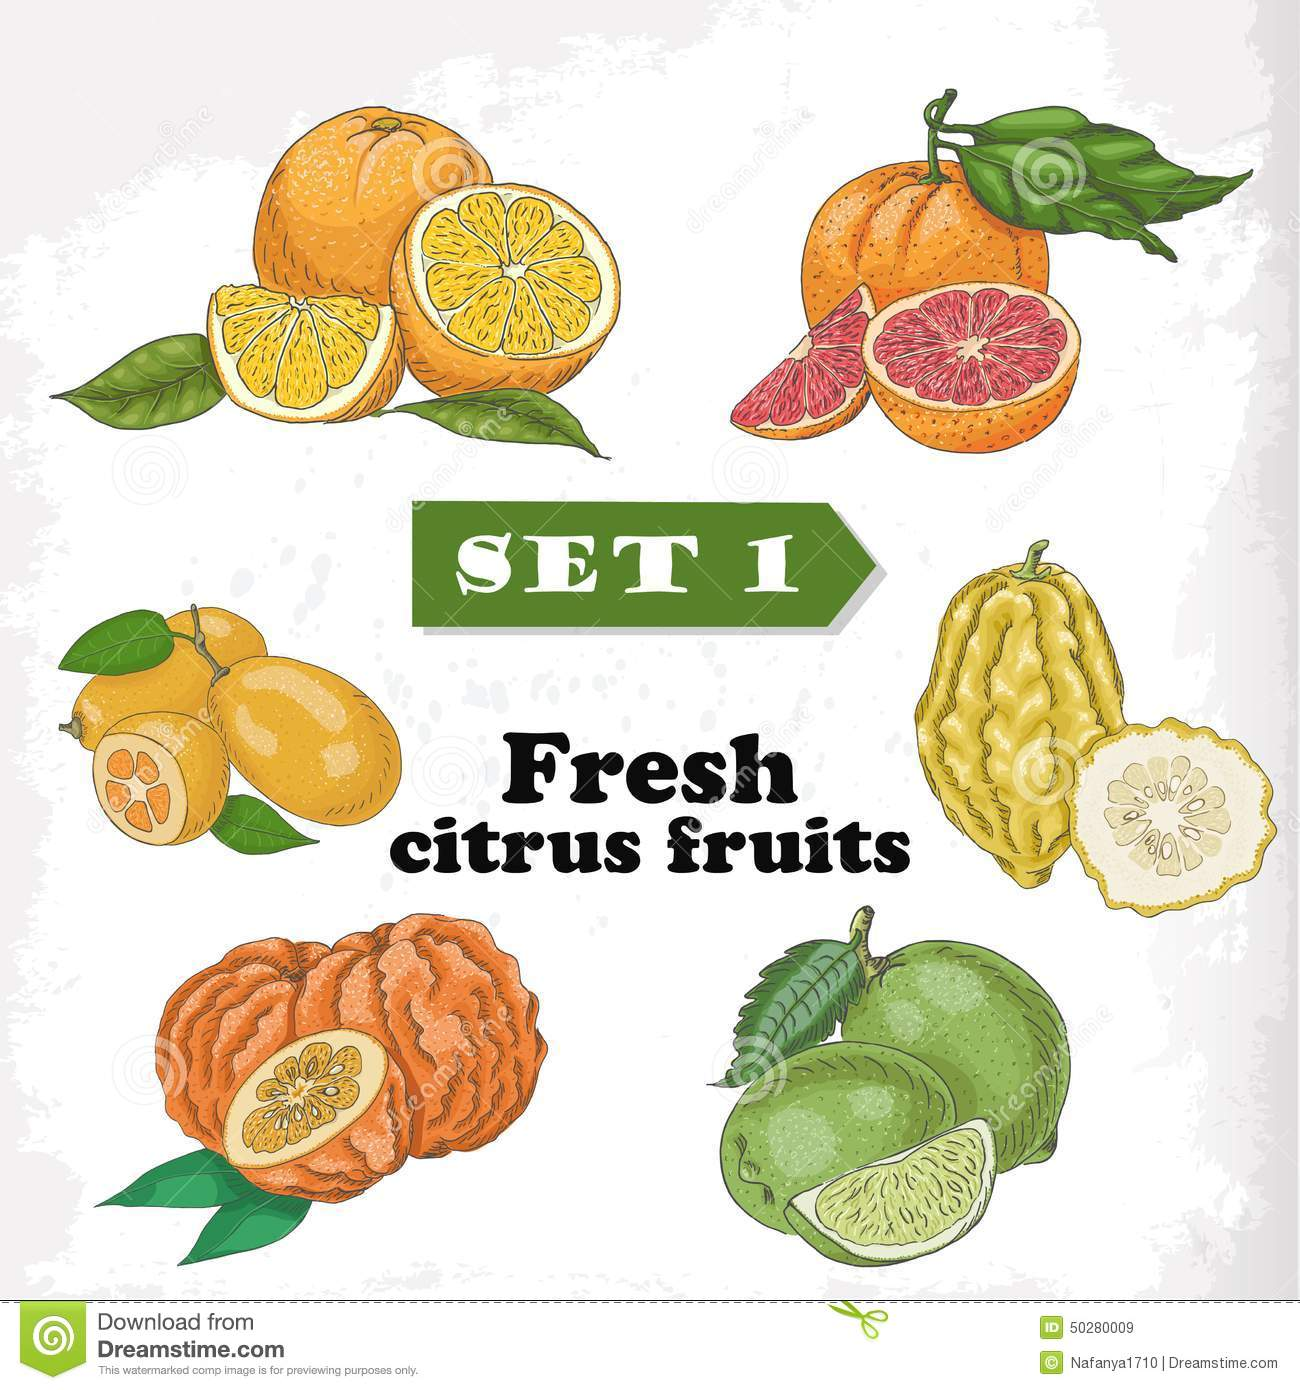 Set 1 Fresh Citrus Fruits Of Orange, Grapefruit, Citron, Lime.